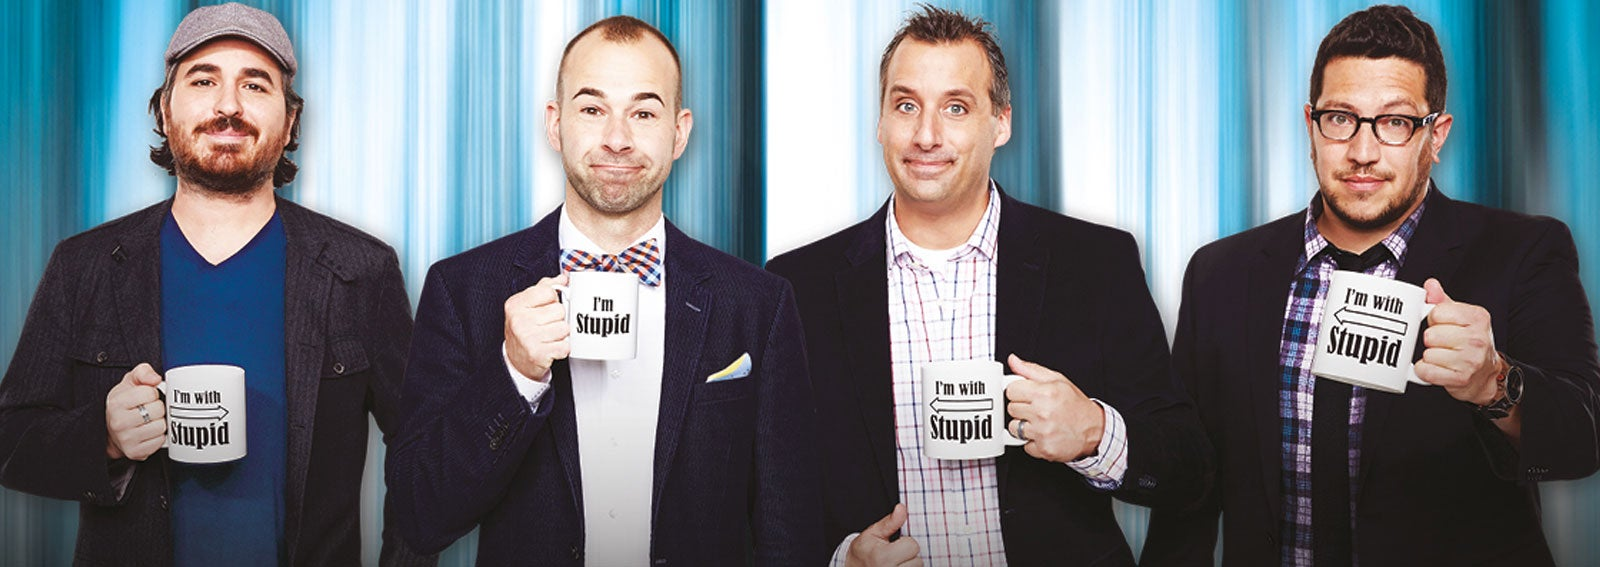 a comprehensive review of impractical jokers an american comedy series Find impractical jokers: the complete fifth season (dvd) at amazoncom  movies & tv, home of  digital 51) subtitles for the hearing impaired: english  region: region 1 (us and canada only  see all 149 customer reviews  i'm  gone through the first four seasons and this continues to be as funny - if not  funnier.